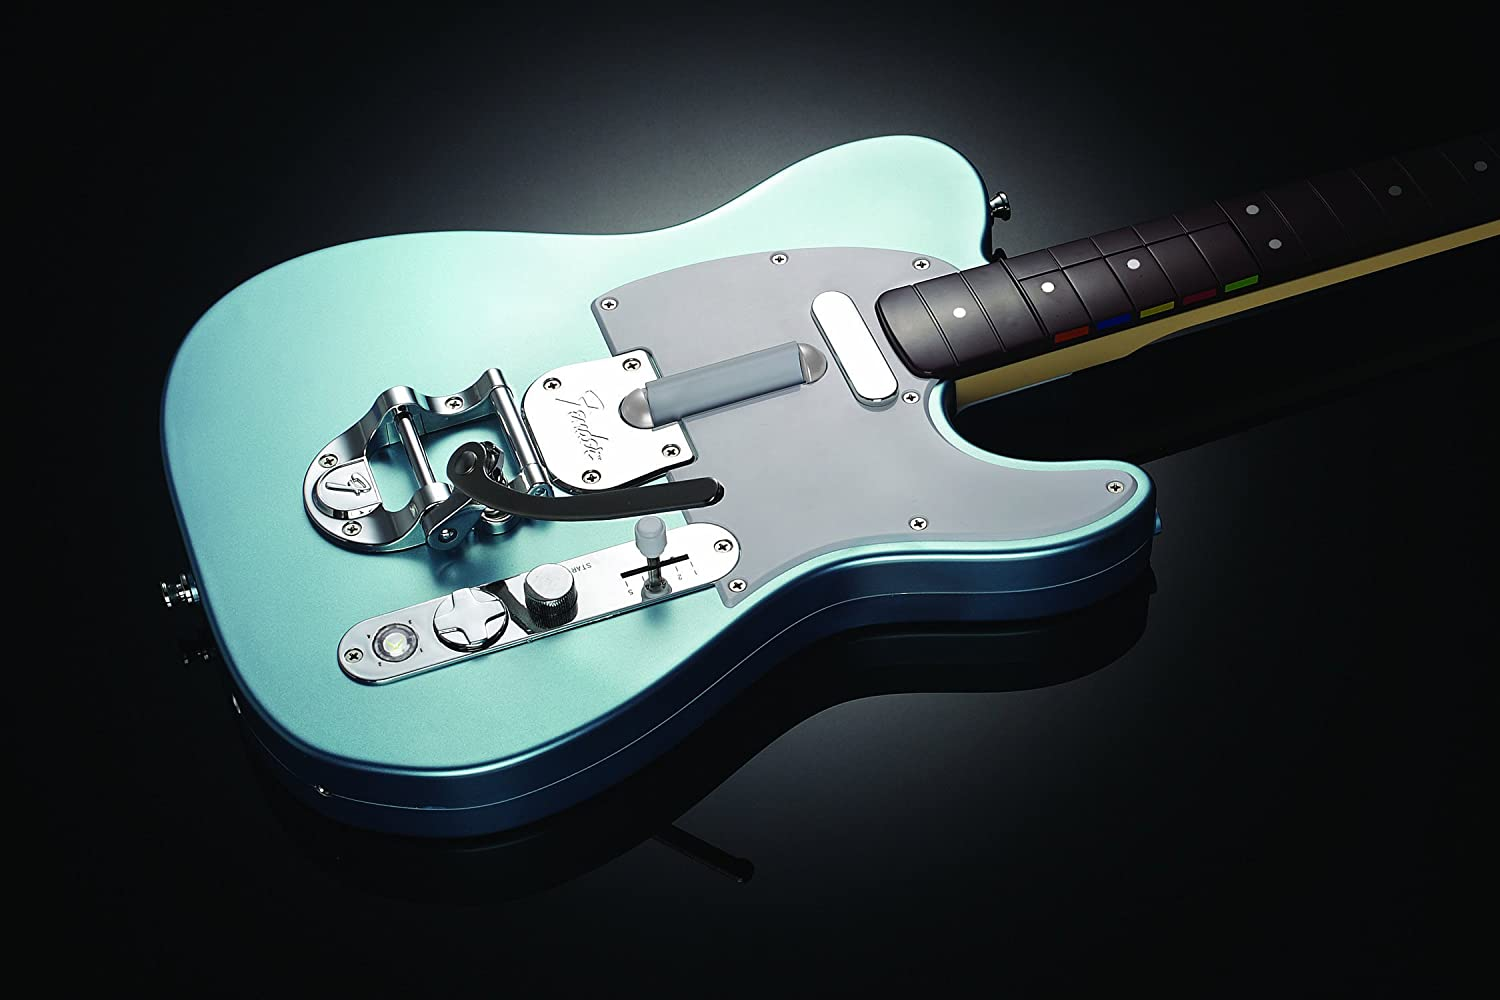 Xbox 360 Rock Band 3 Wireless Fender Telecaster Players Guitar Hero Wiring Diagram Edition Light Blue Video Games